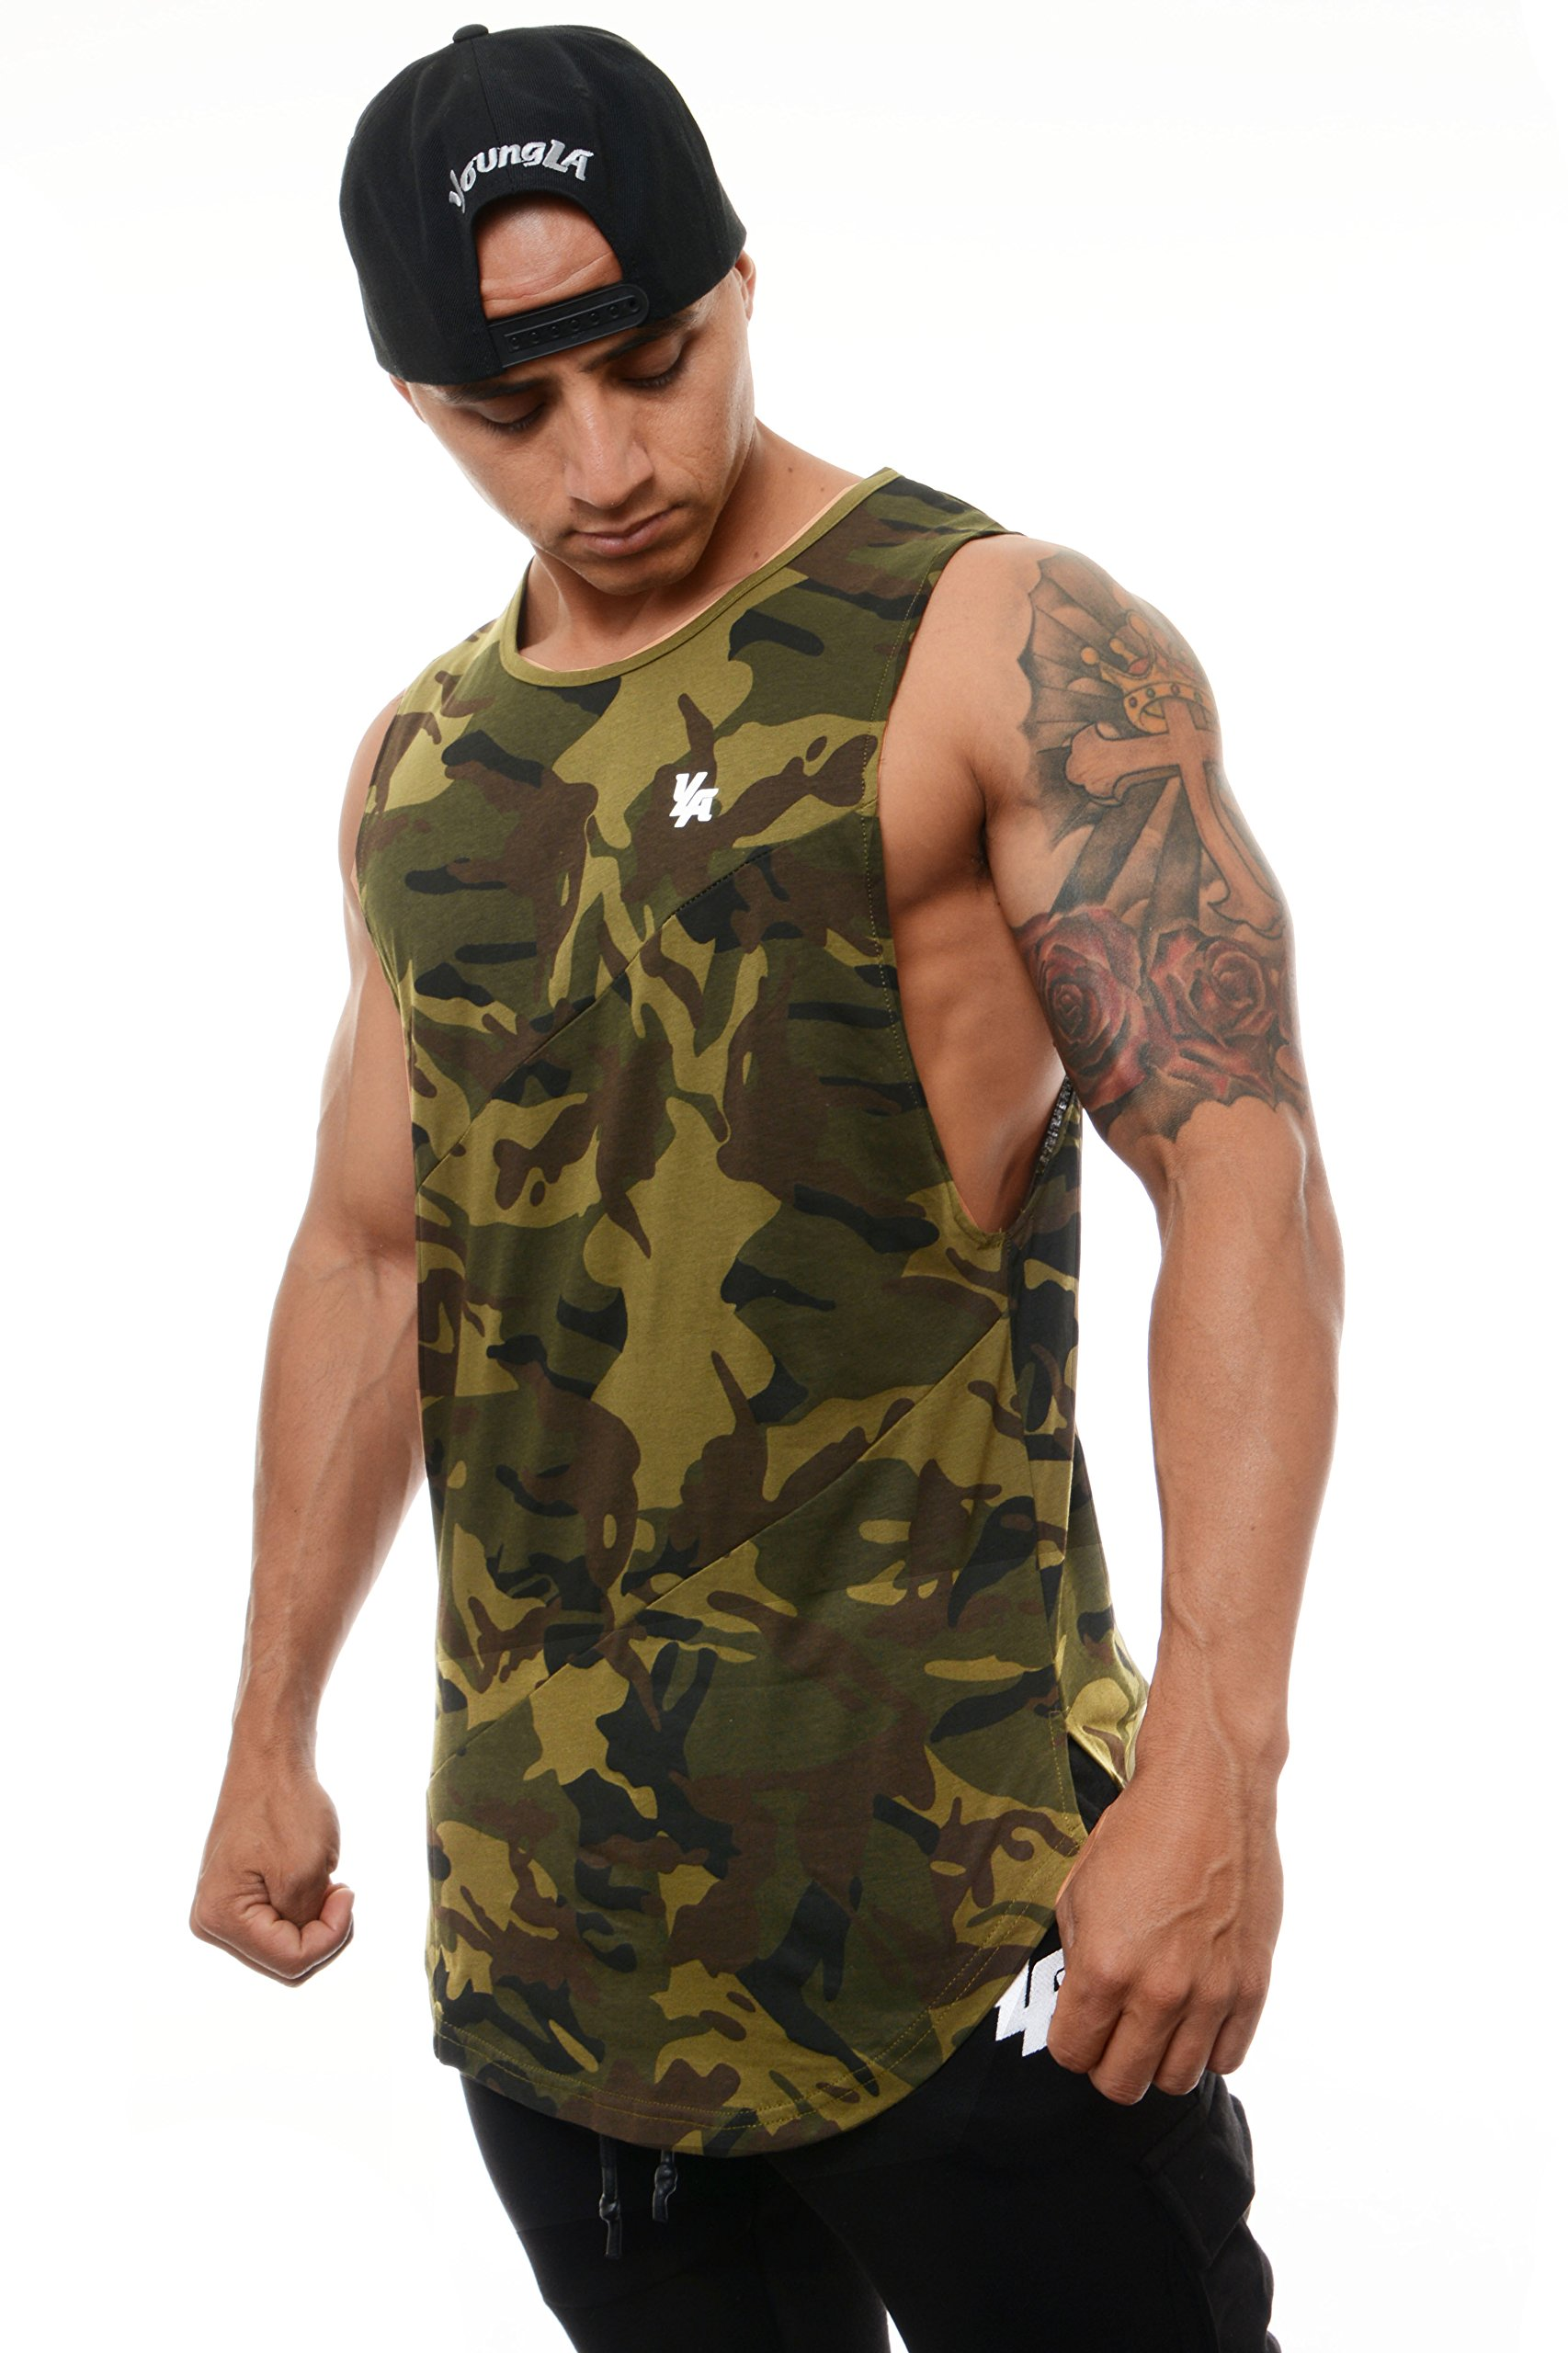 YoungLA Long Tank Tops for Men Muscle Shirt Bodybuilding Gym Athletic Training Sports Everyday Wear 306 Camo Green Small